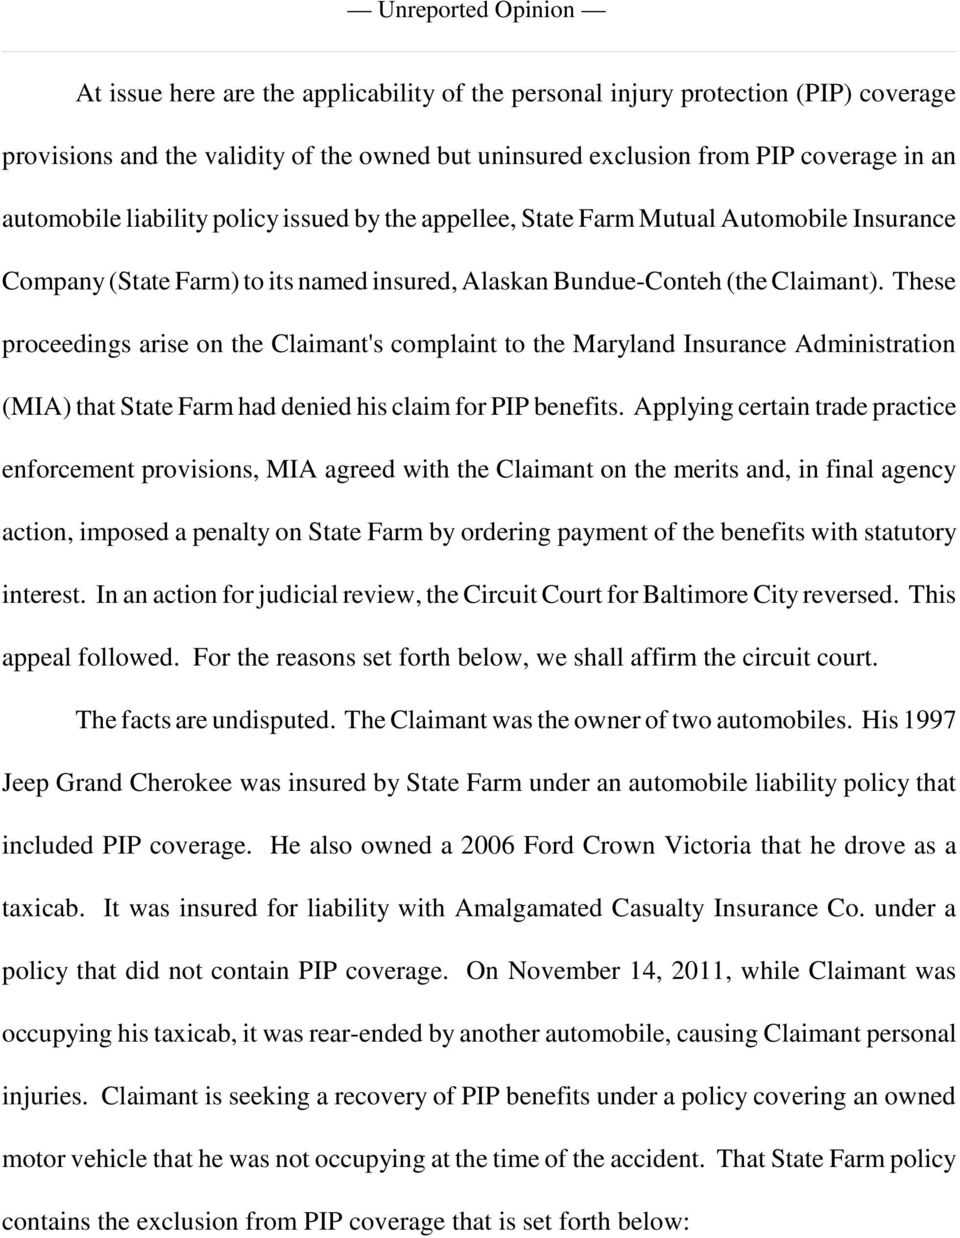 These proceedings arise on the Claimant's complaint to the Maryland Insurance Administration (MIA) that State Farm had denied his claim for PIP benefits.